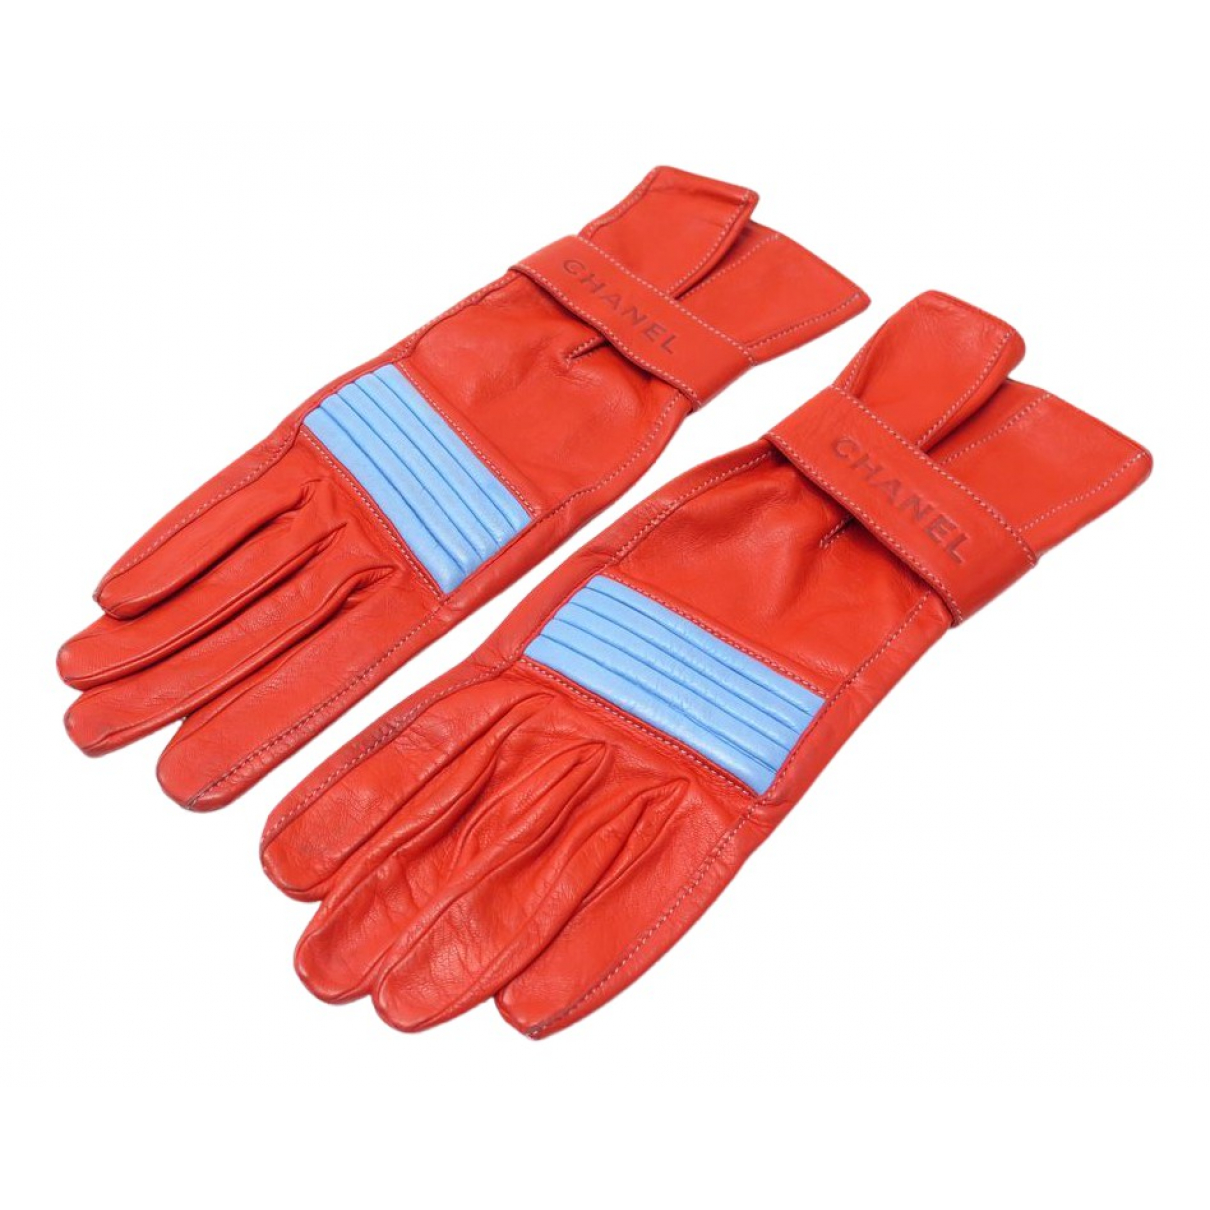 Chanel N Red Leather Gloves for Women 7 inches